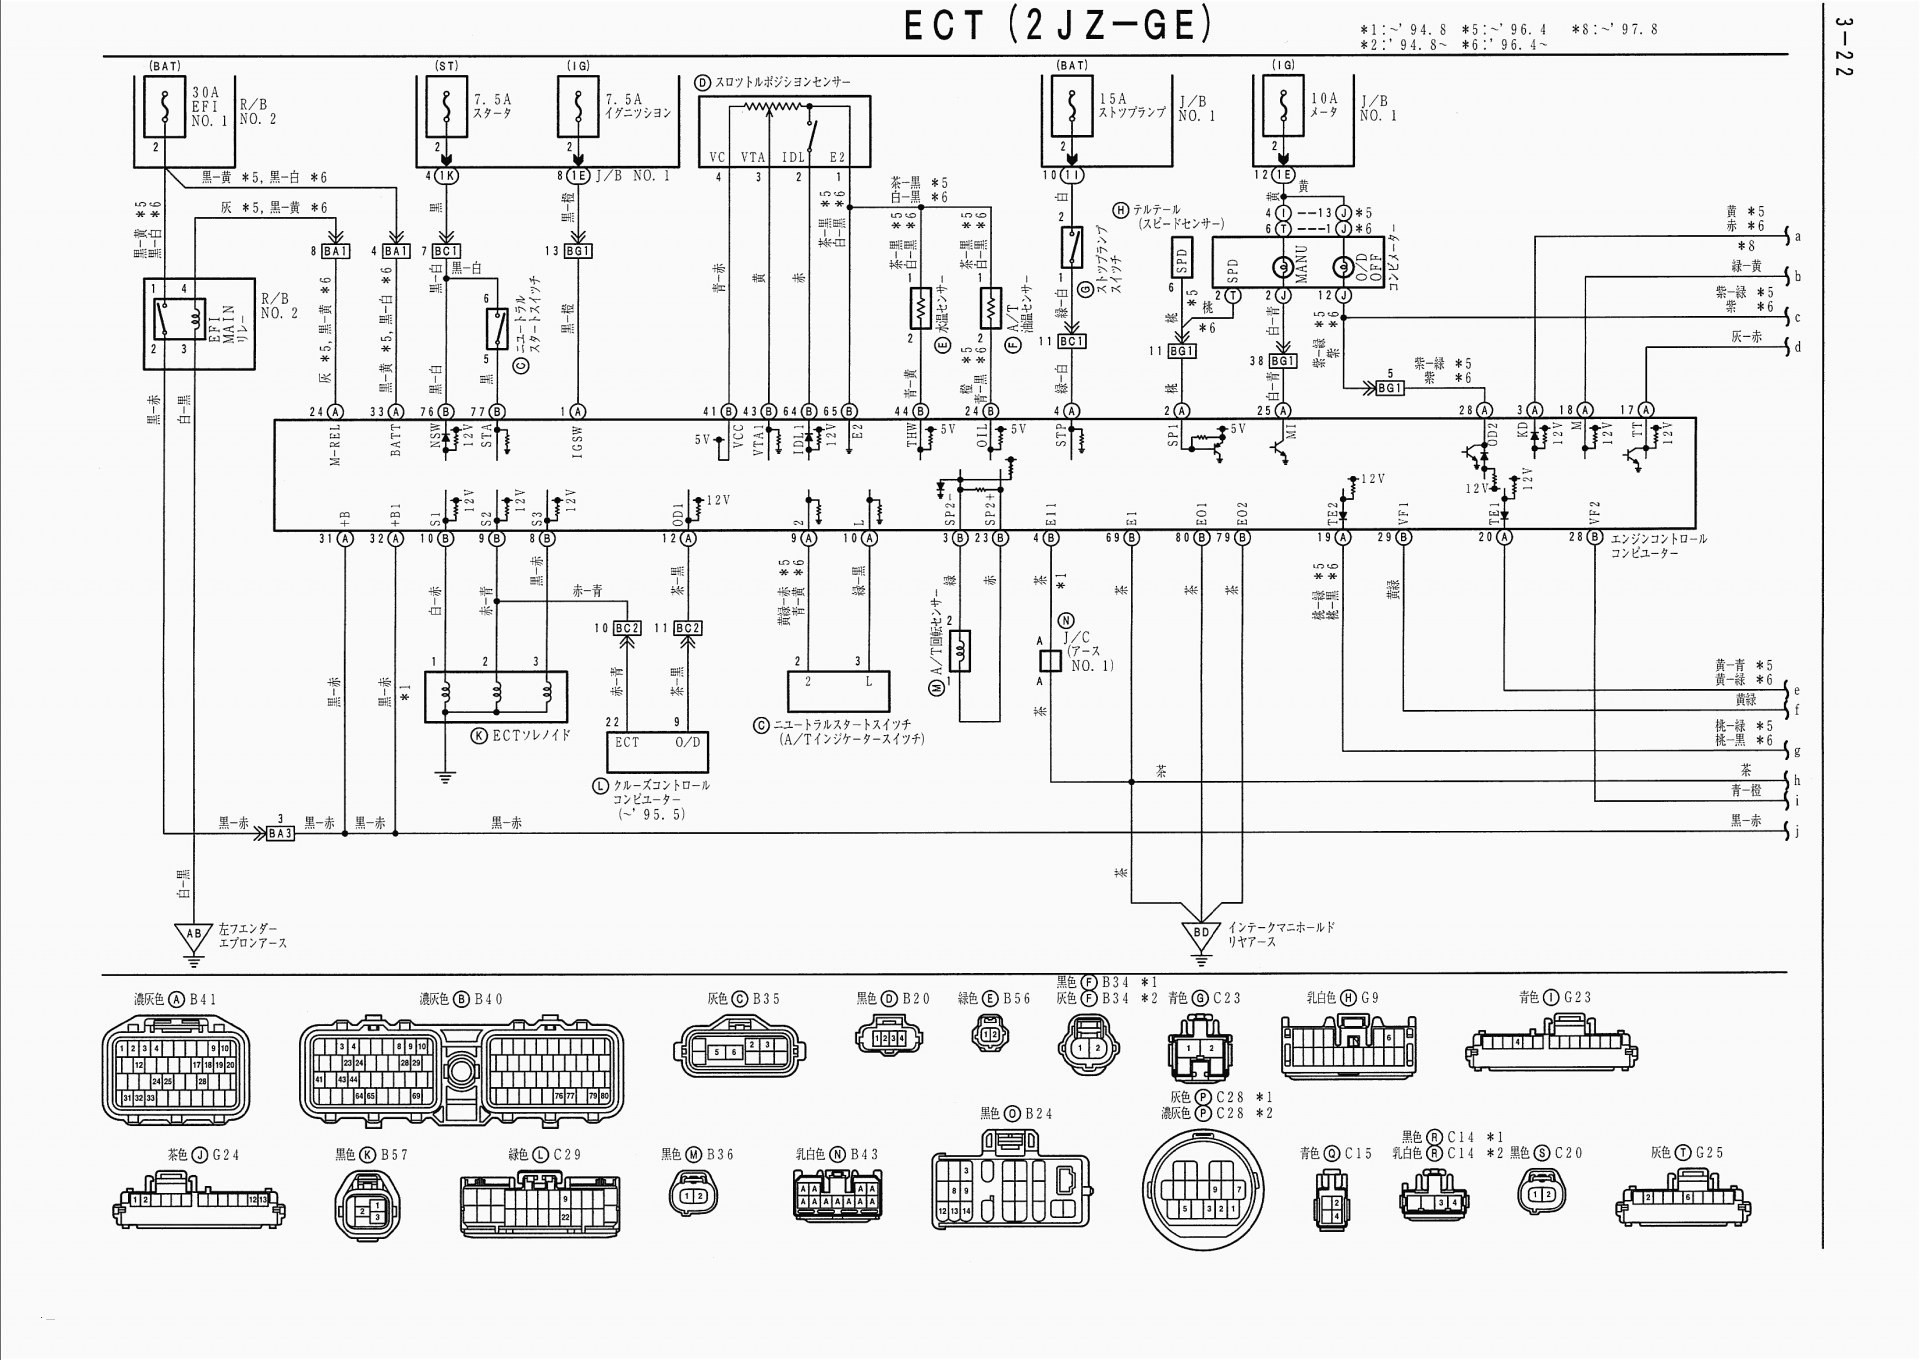 Labeled Car Dashboard Diagram Electronic Diagram Schaferforcongressfo Schaferforcongressfo Of Labeled Car Dashboard Diagram